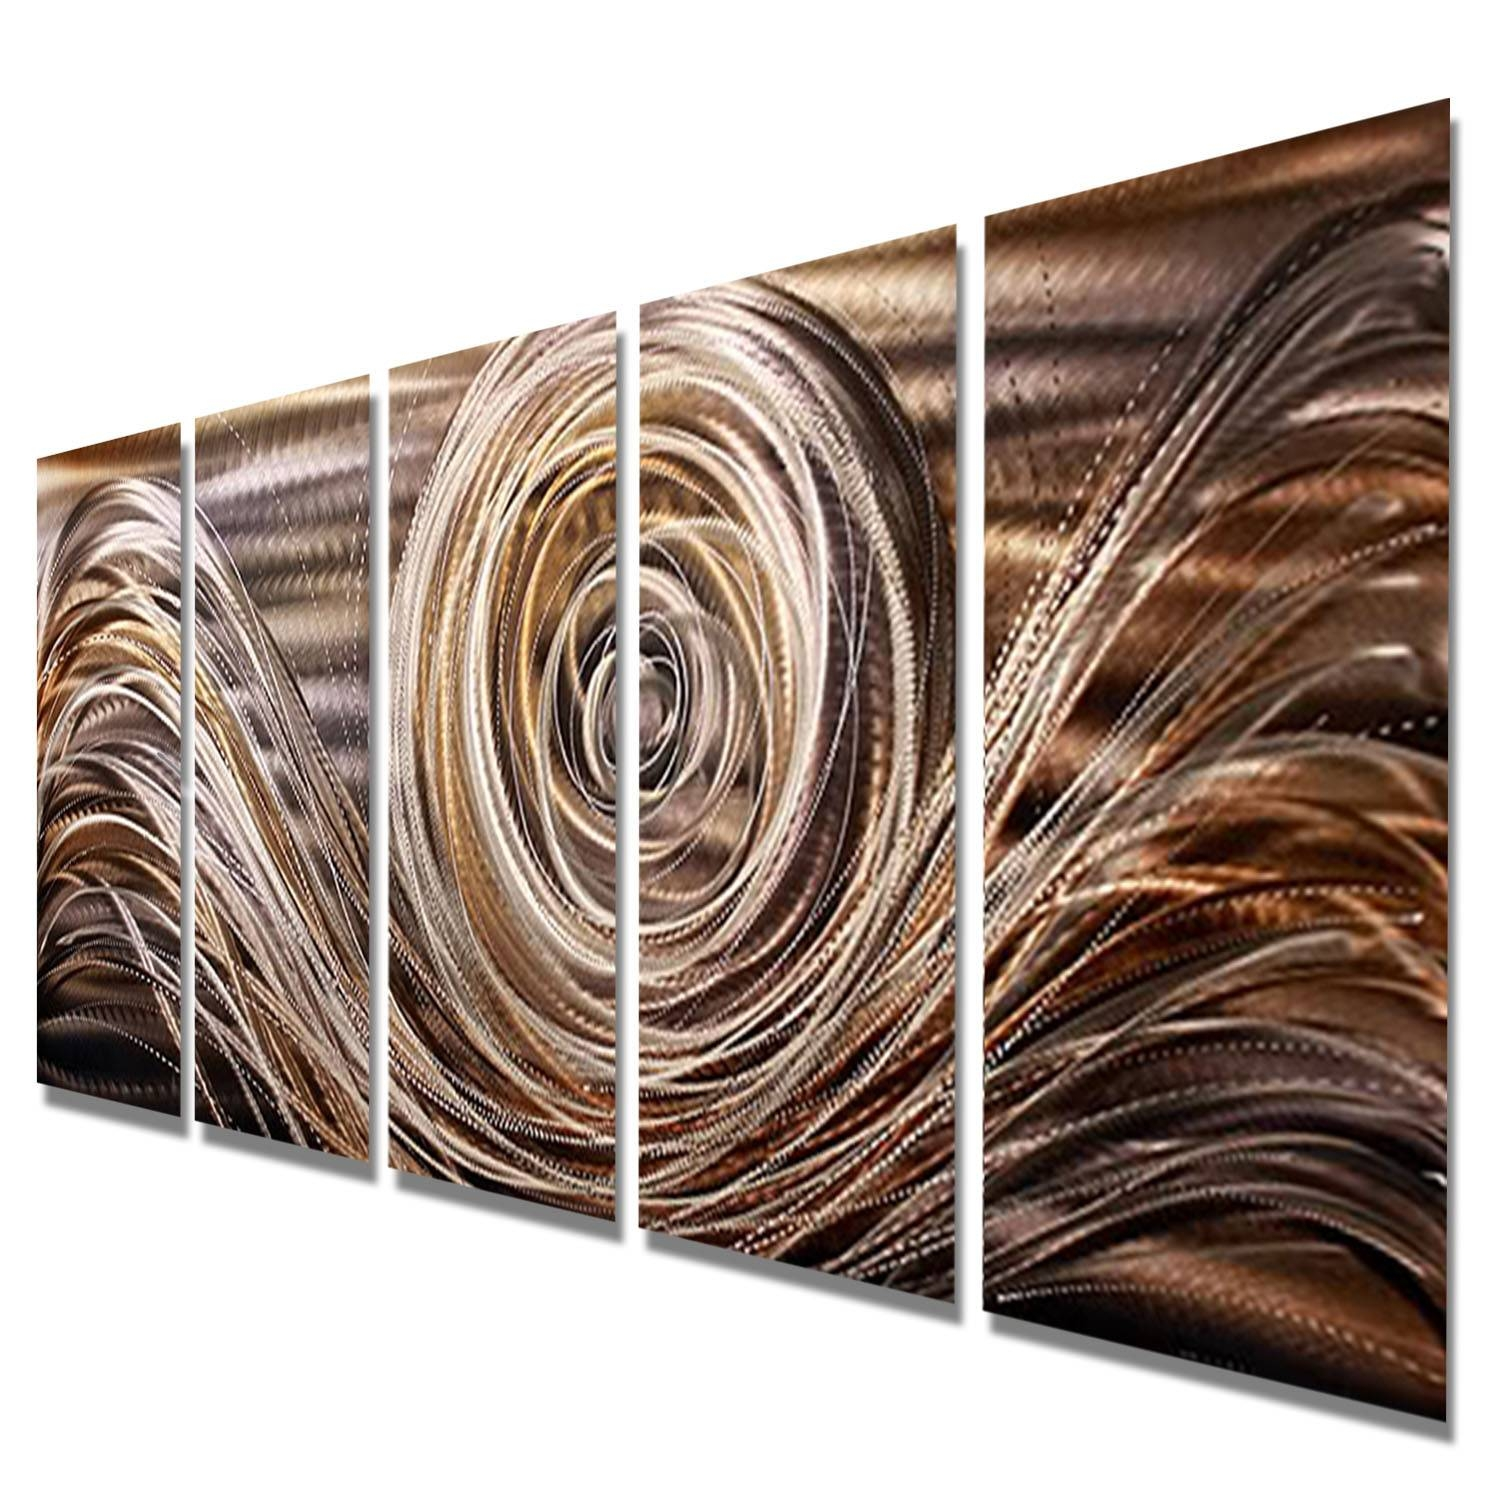 Mocha Swirl – Charcoal, Brown, Gold, And Silver Metal Wall Art – 5 Inside Most Recent Swirl Metal Wall Art (View 15 of 20)